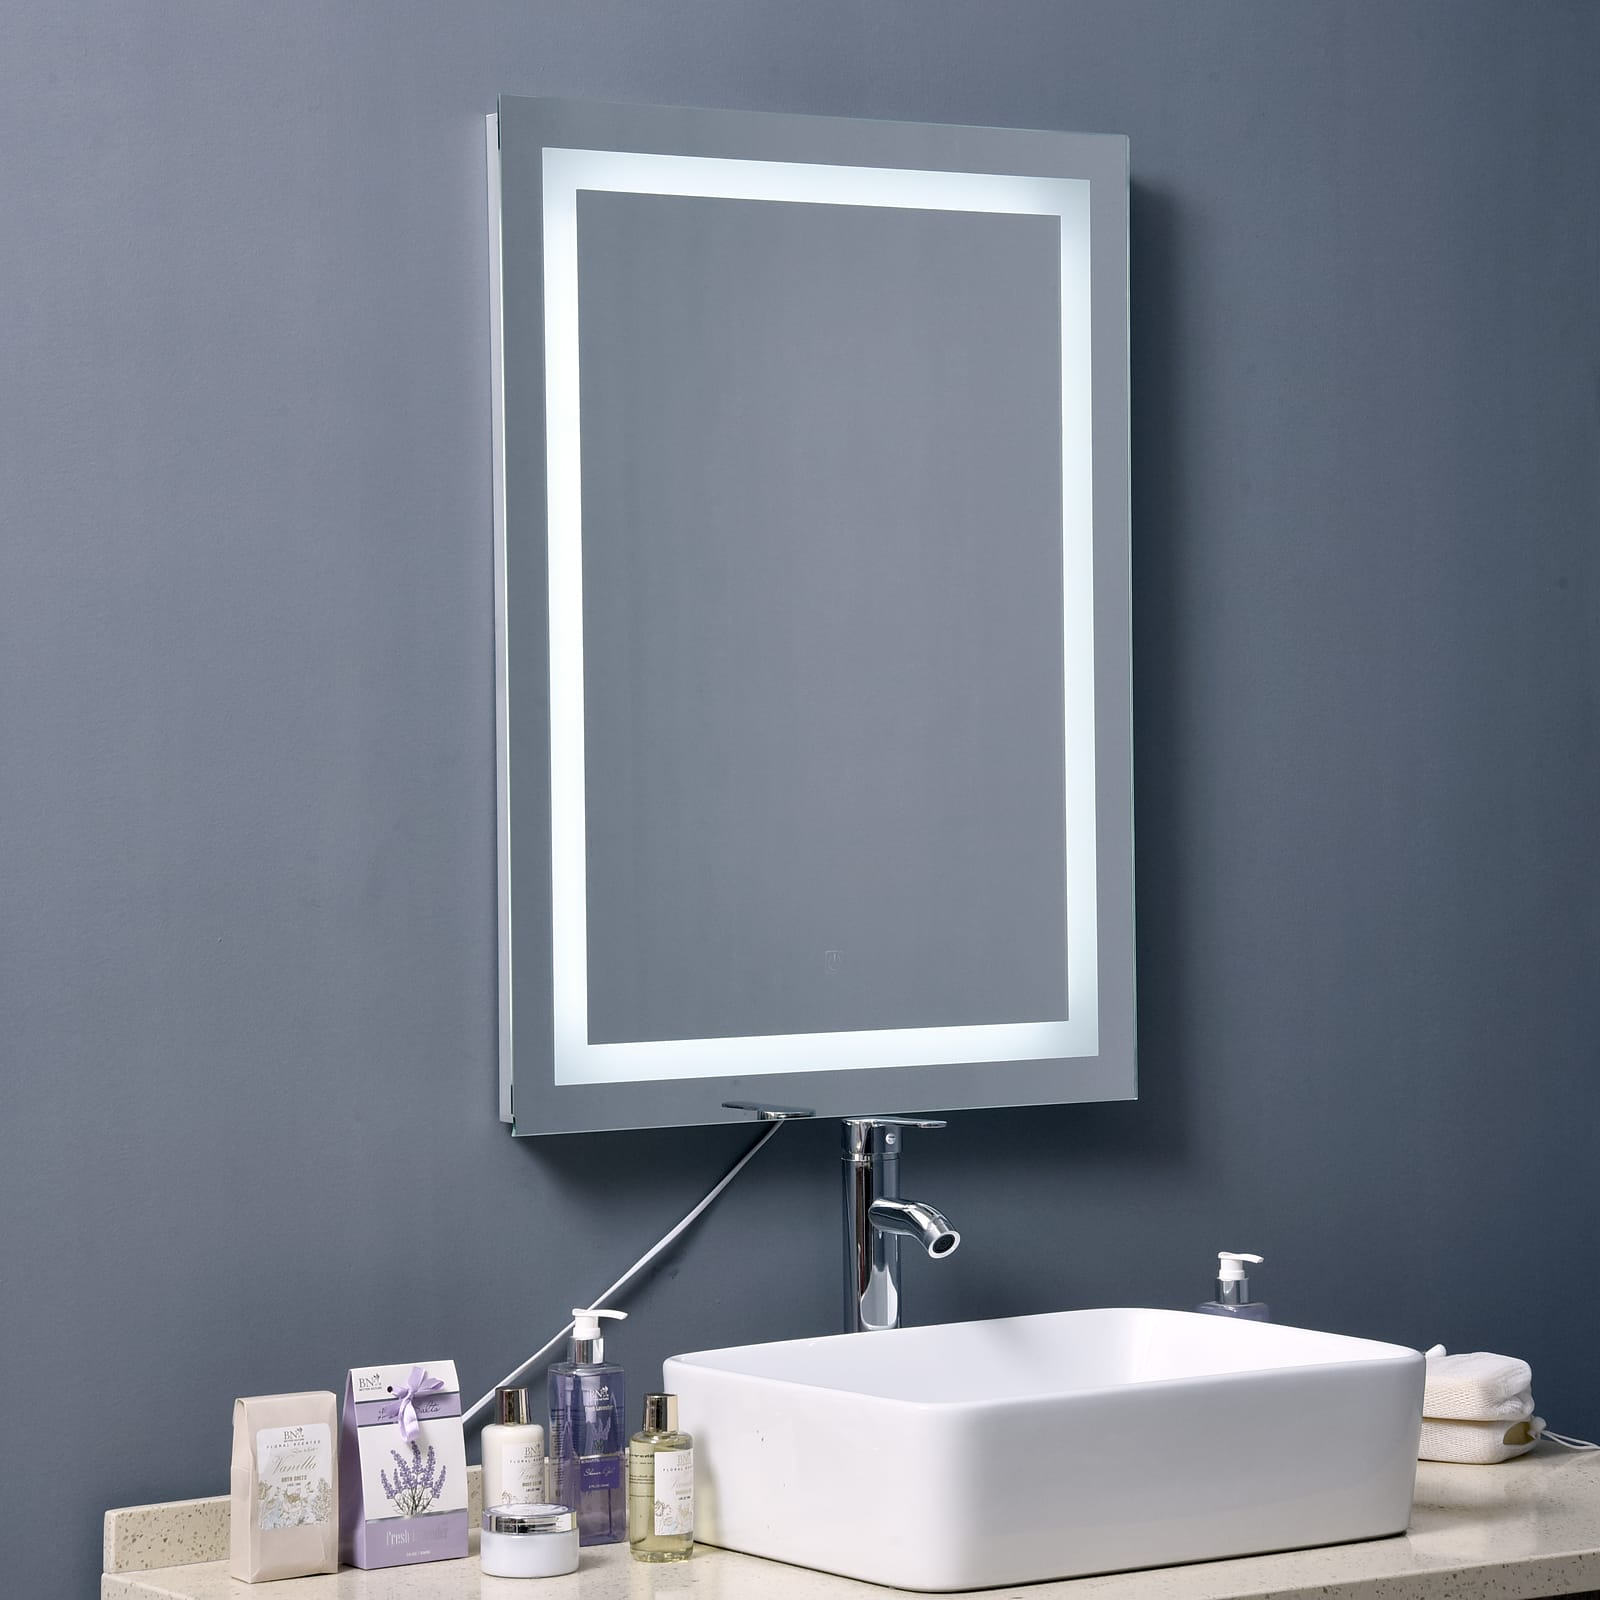 "HomCom 32"" LED Bathroom Wall Mirror with Defogger - $69.99 + Free Shipping"